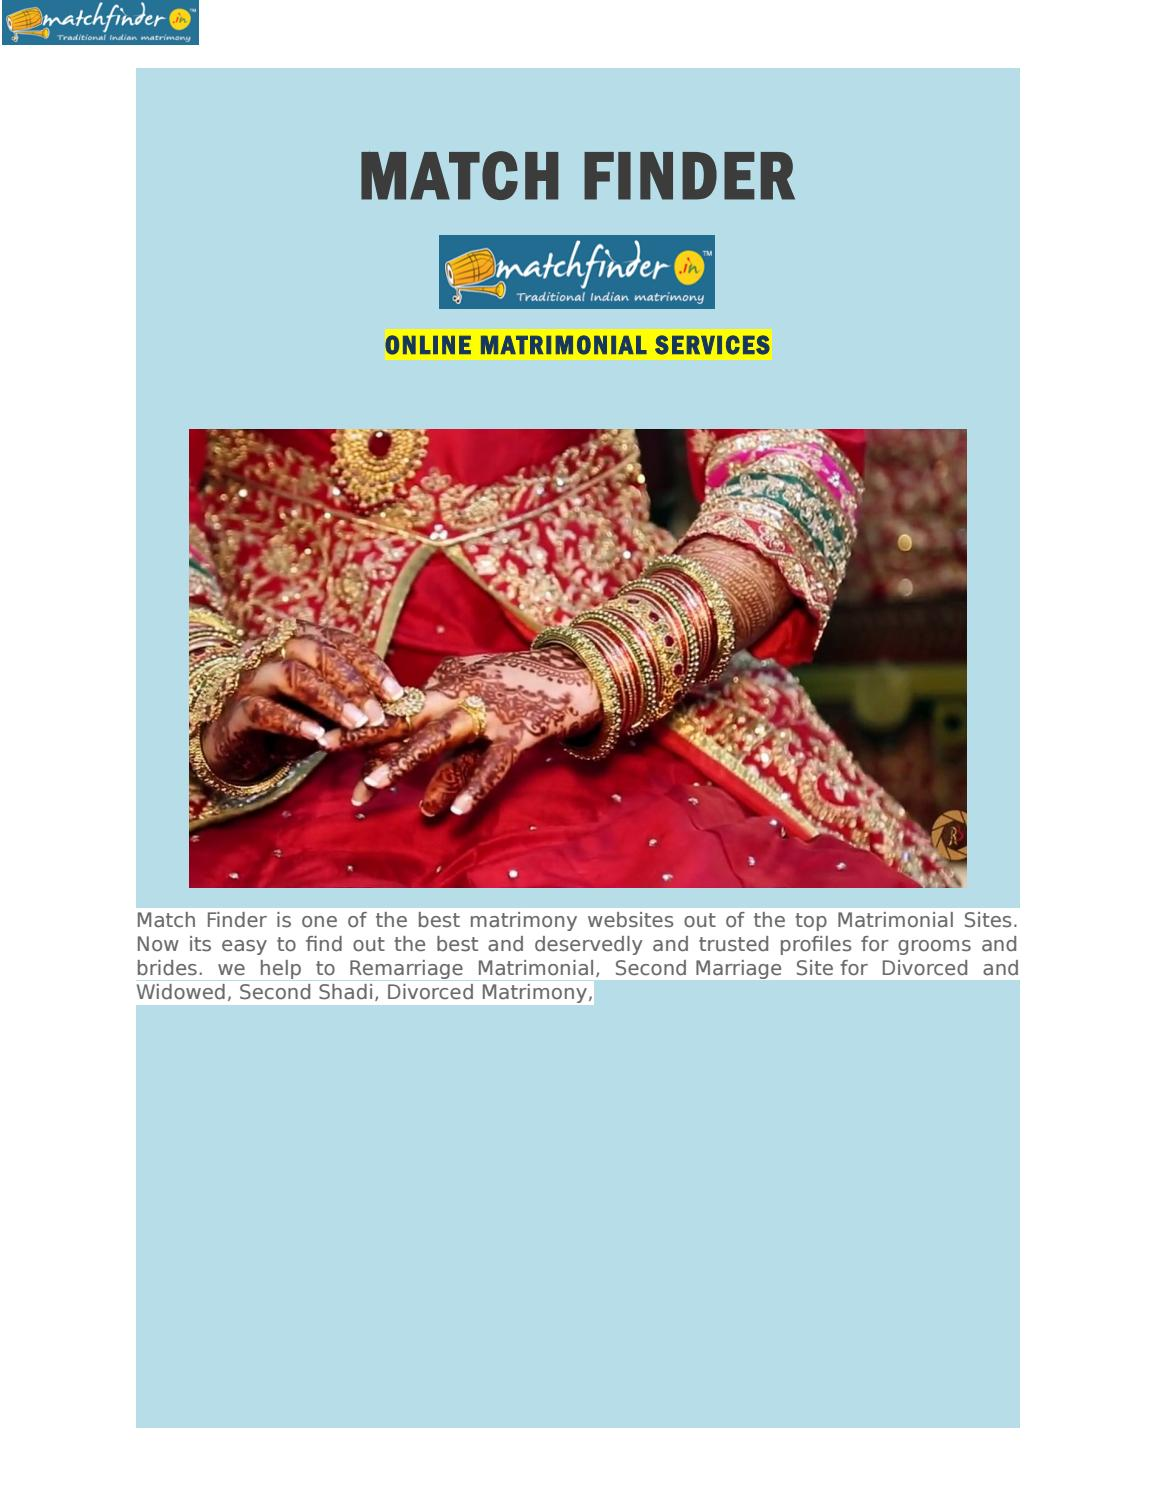 Online Marriage By Matchfinder Online Services Pvt Ltd Issuu